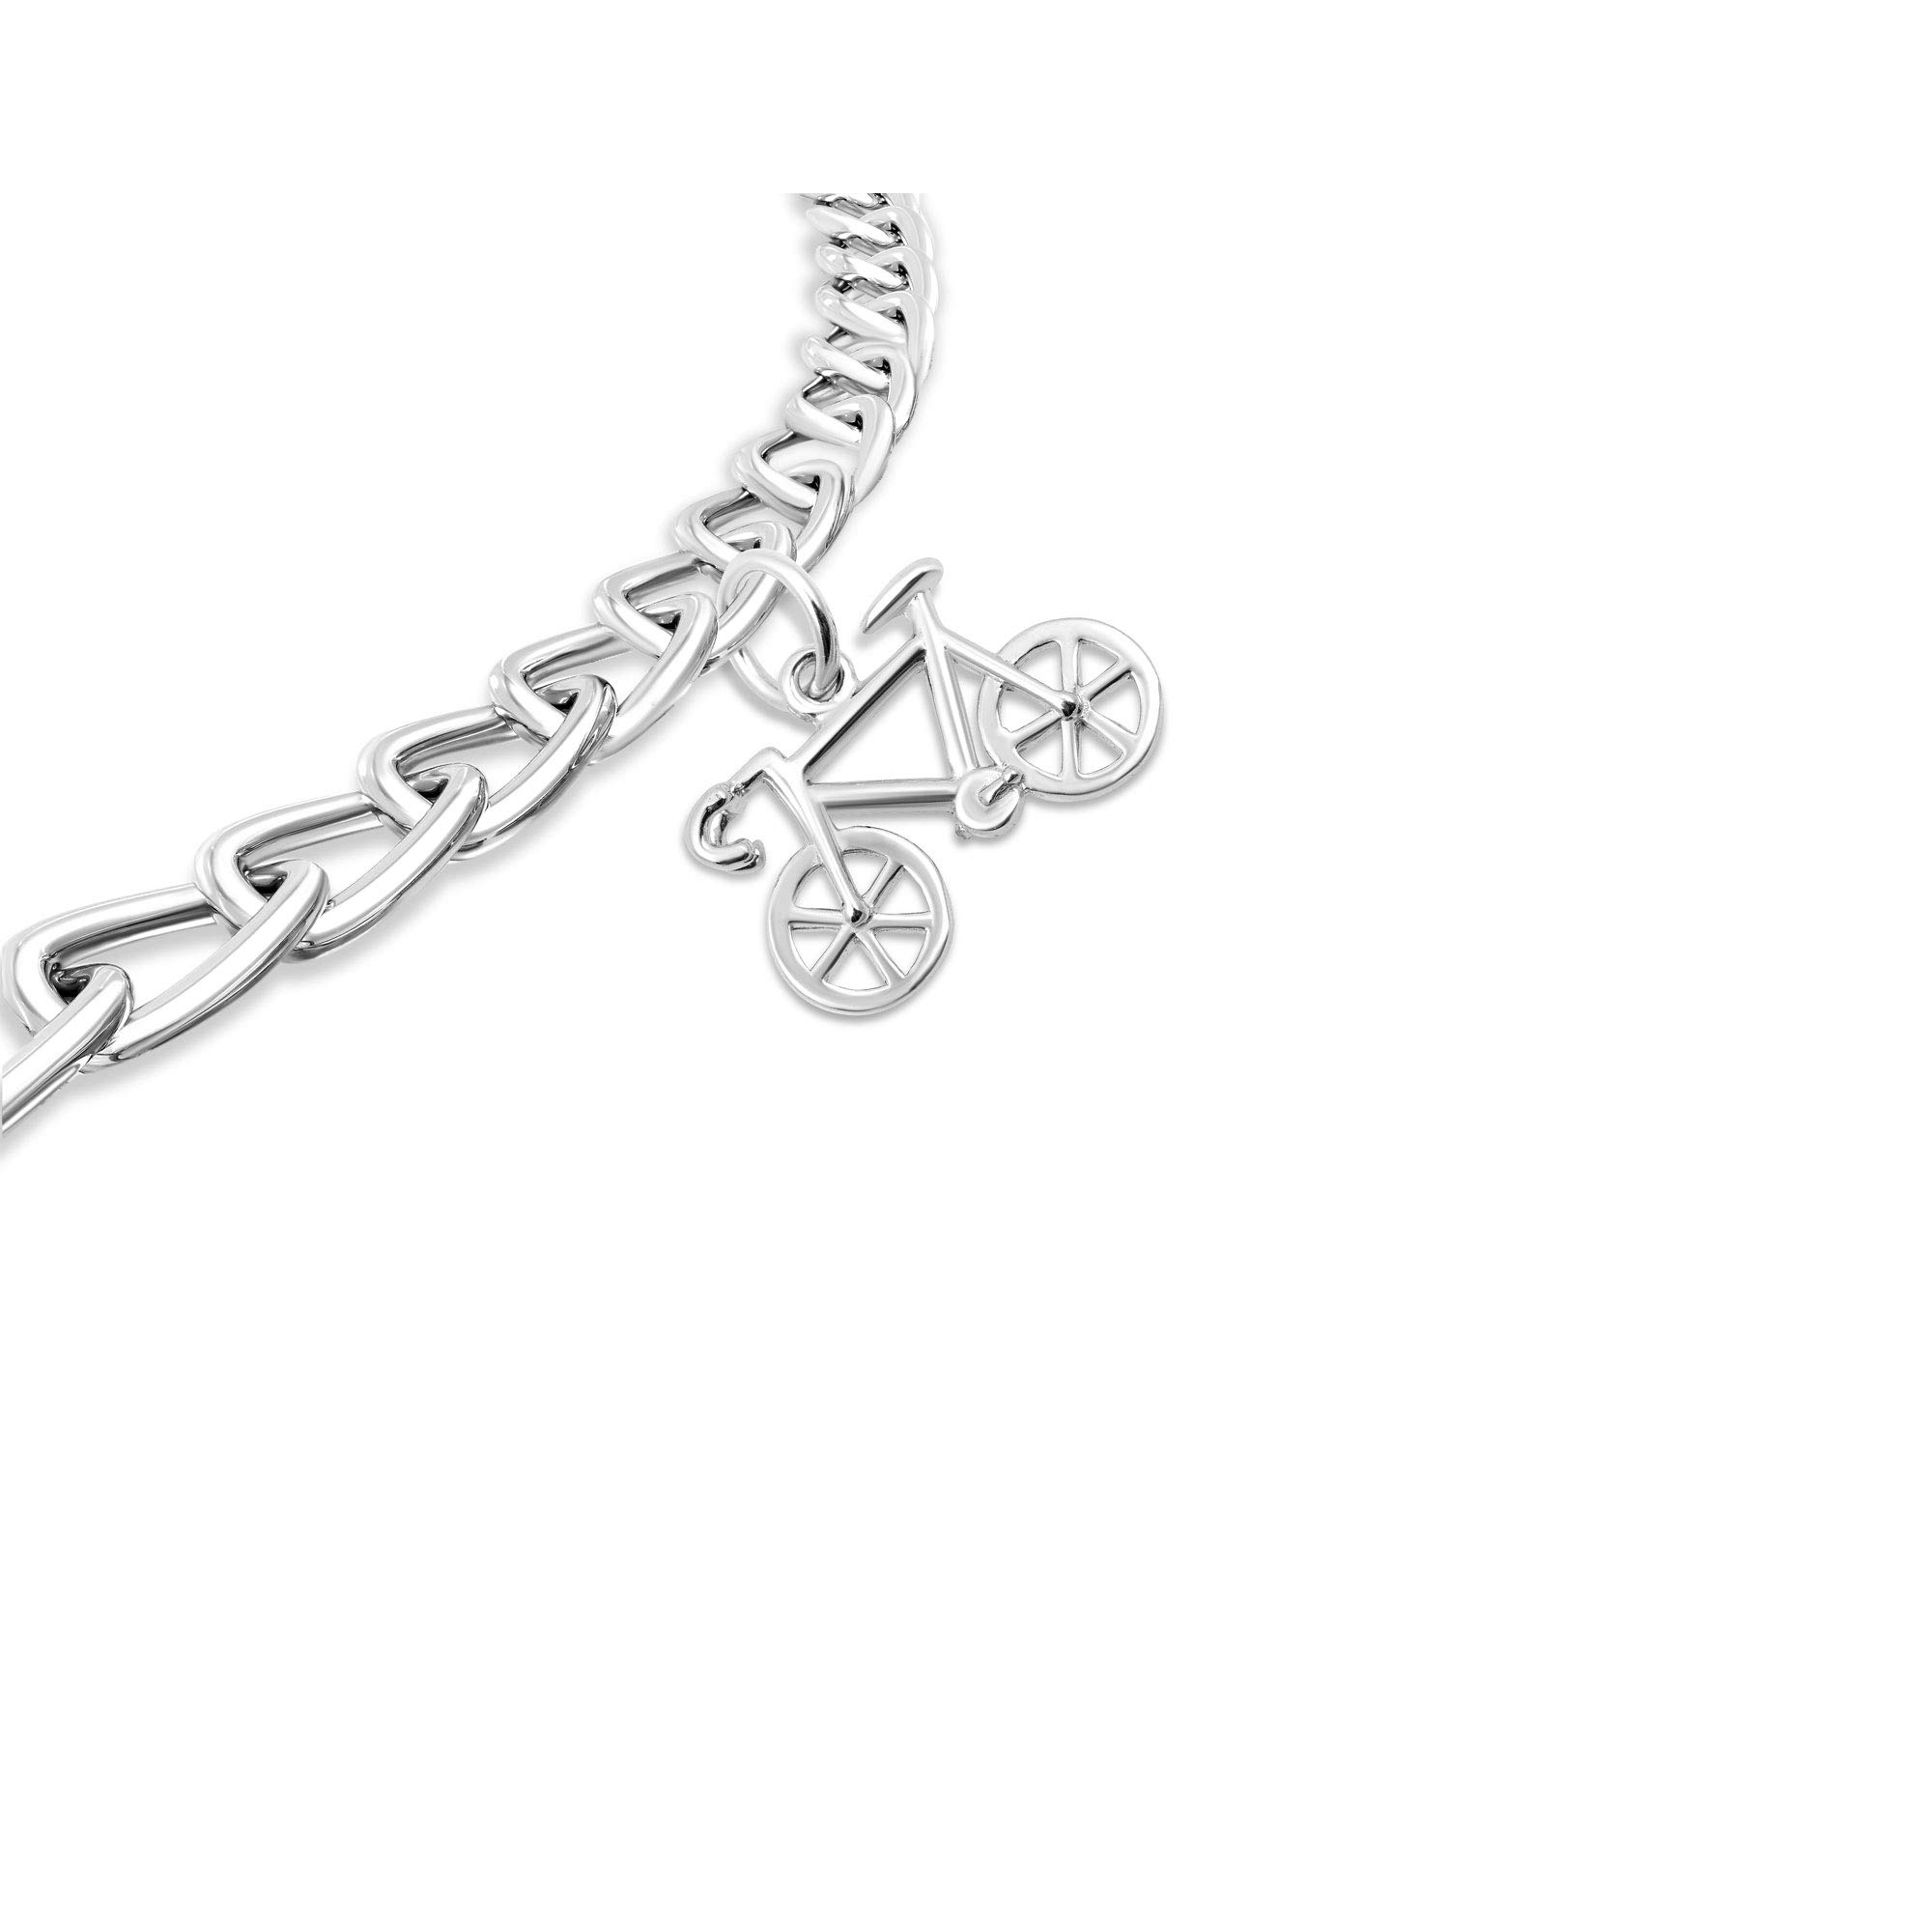 Necklace & Bracelet Charms, Sports & Fitness Theme Sterling Silver Jewelry by Silver on the Rocks by Silver on the Rocks (Image #3)